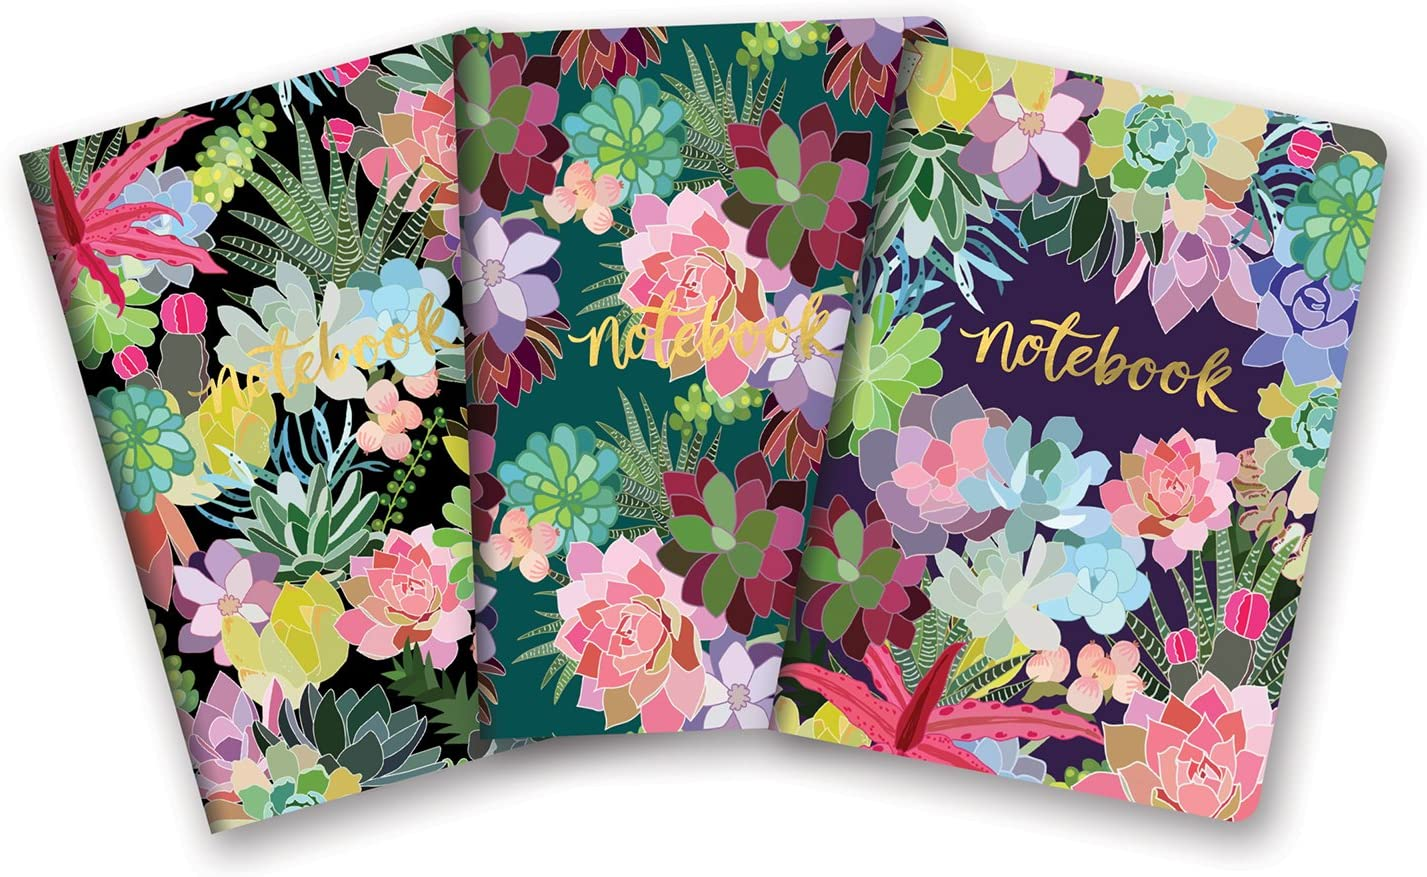 Notebook Trio by Studio Oh! - Set of 3 - Succulent Paradise - 5.75